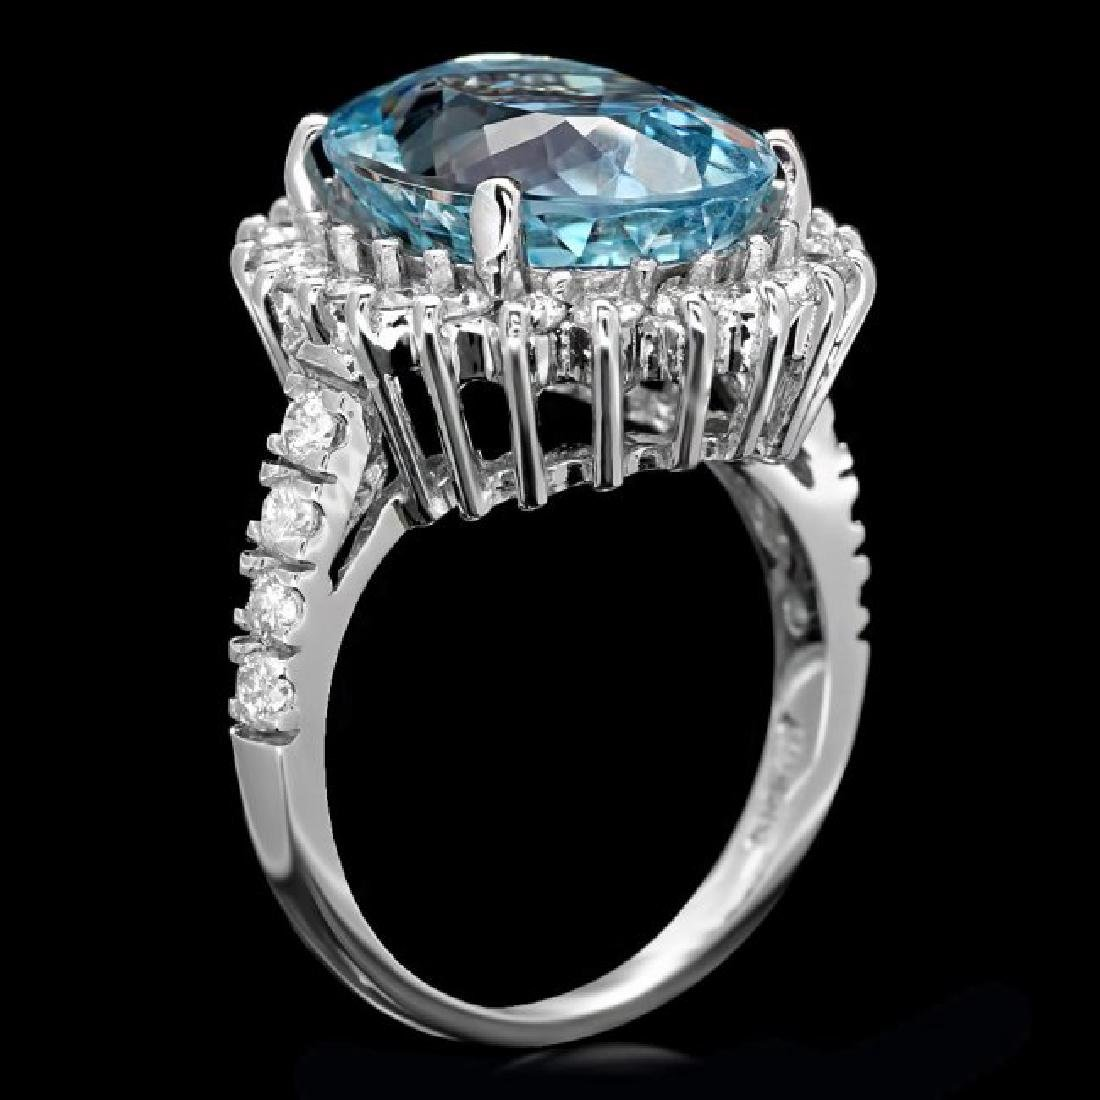 14k Gold 7.50ct Aquamarine 1.00ct Diamond Ring - 3